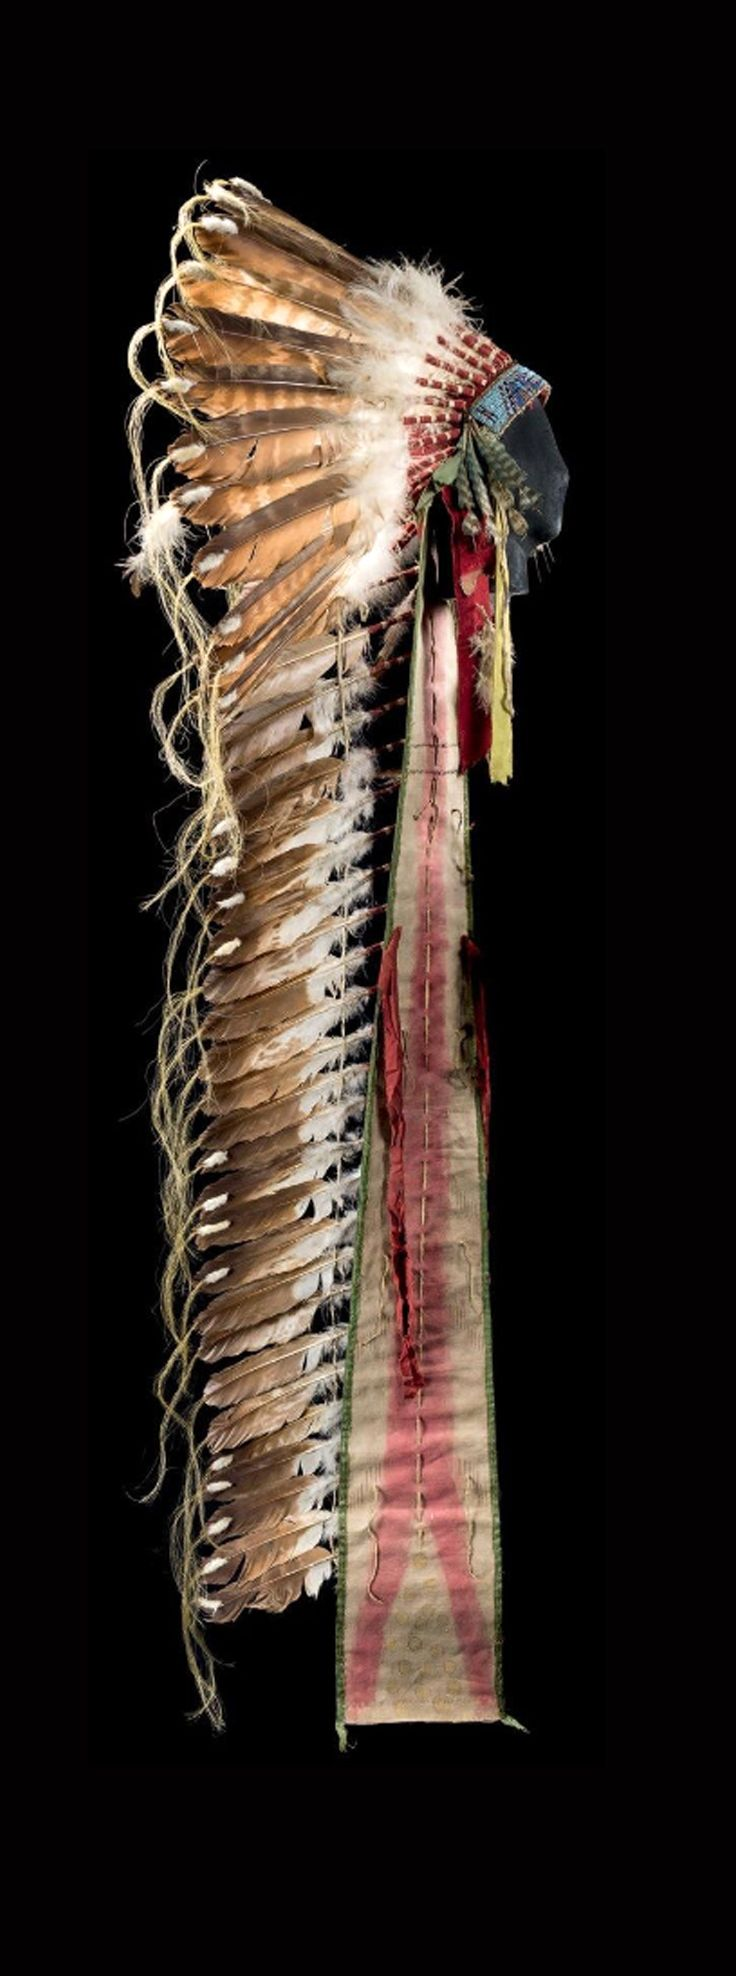 Warrior's headdress; Plains Indians; possibly Sioux   Eagle feathers, red felt, cloth, glass beads, wool and fur   ca. 1910  